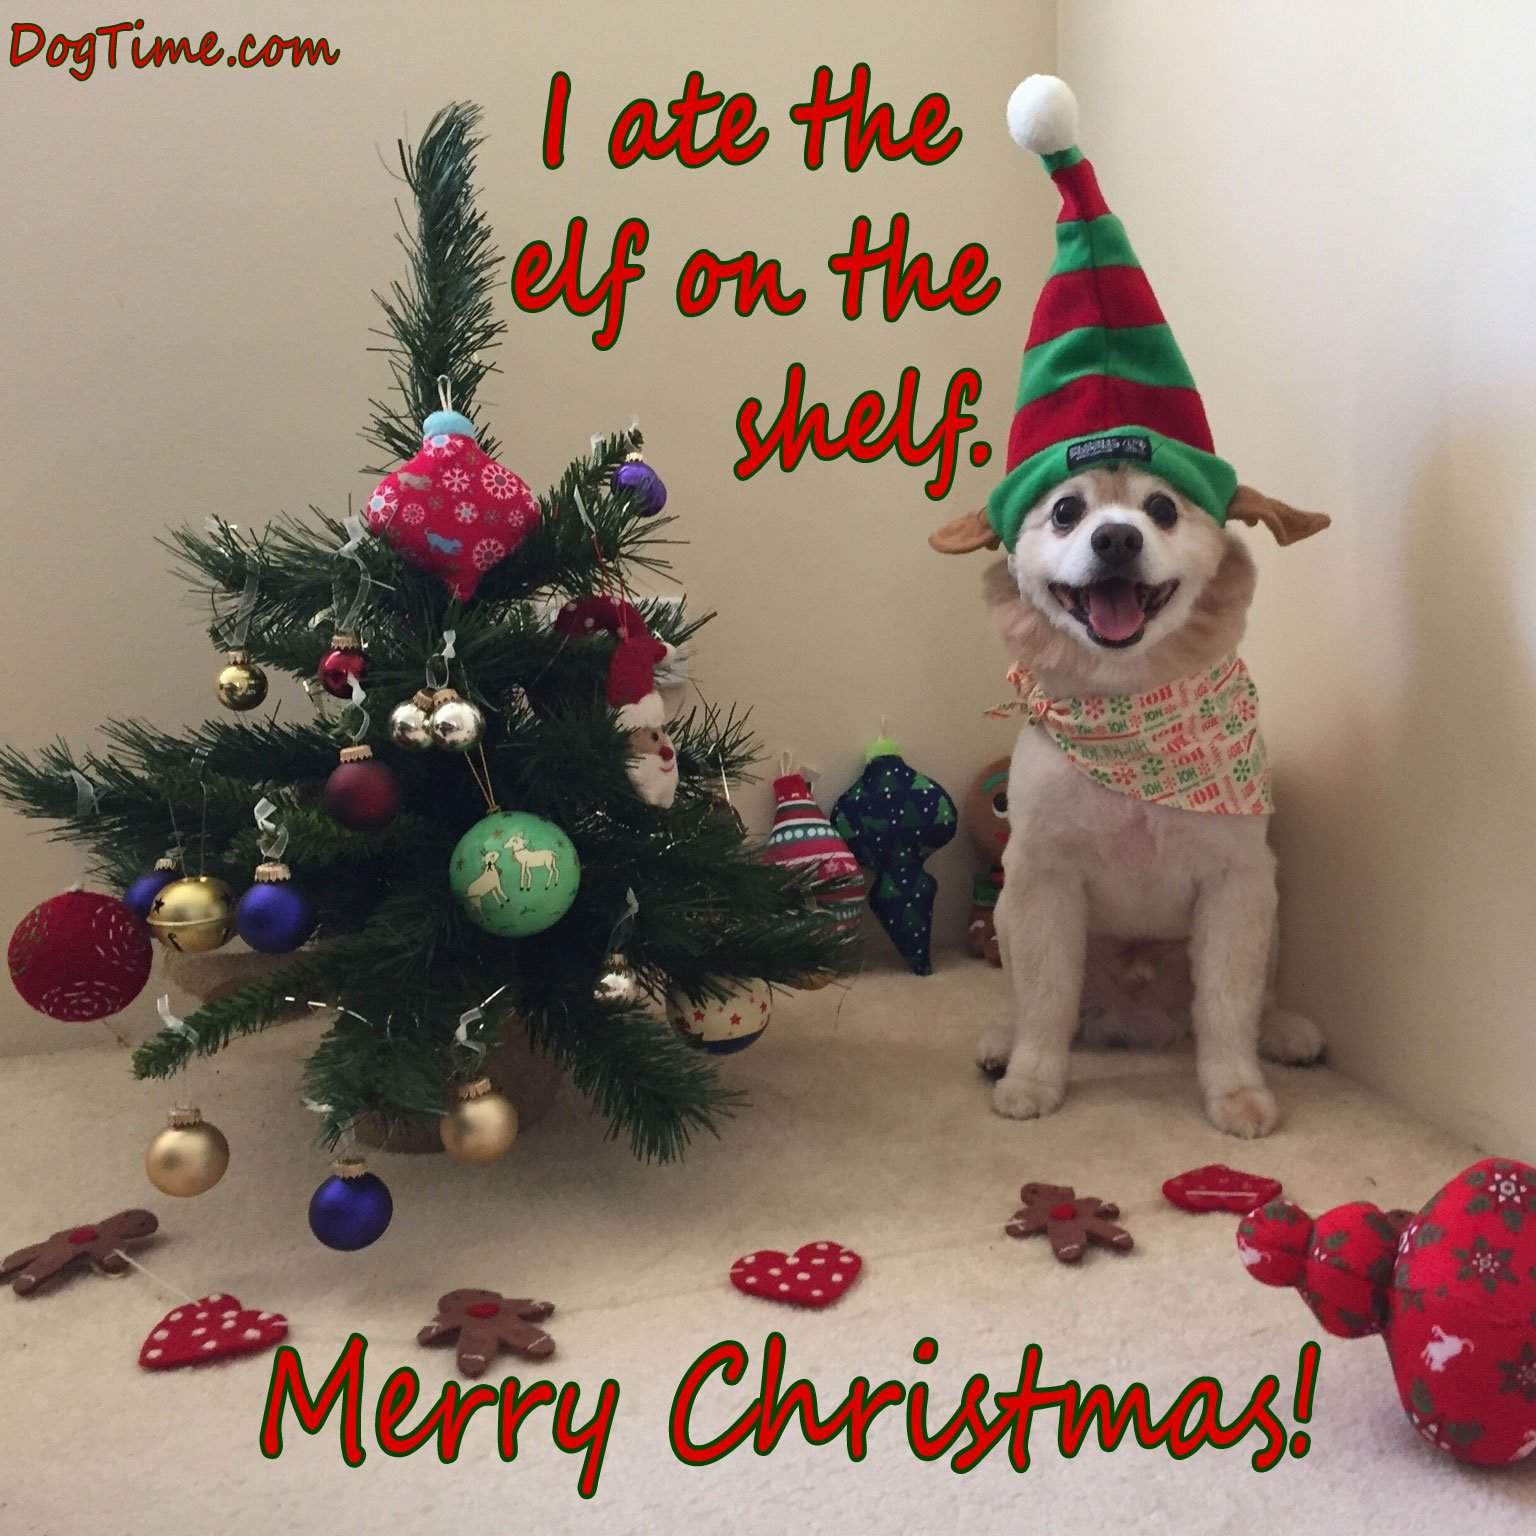 30 dog christmas cards you can share with your friends and family 30 dog christmas cards you can share with your friends and family kristyandbryce Choice Image